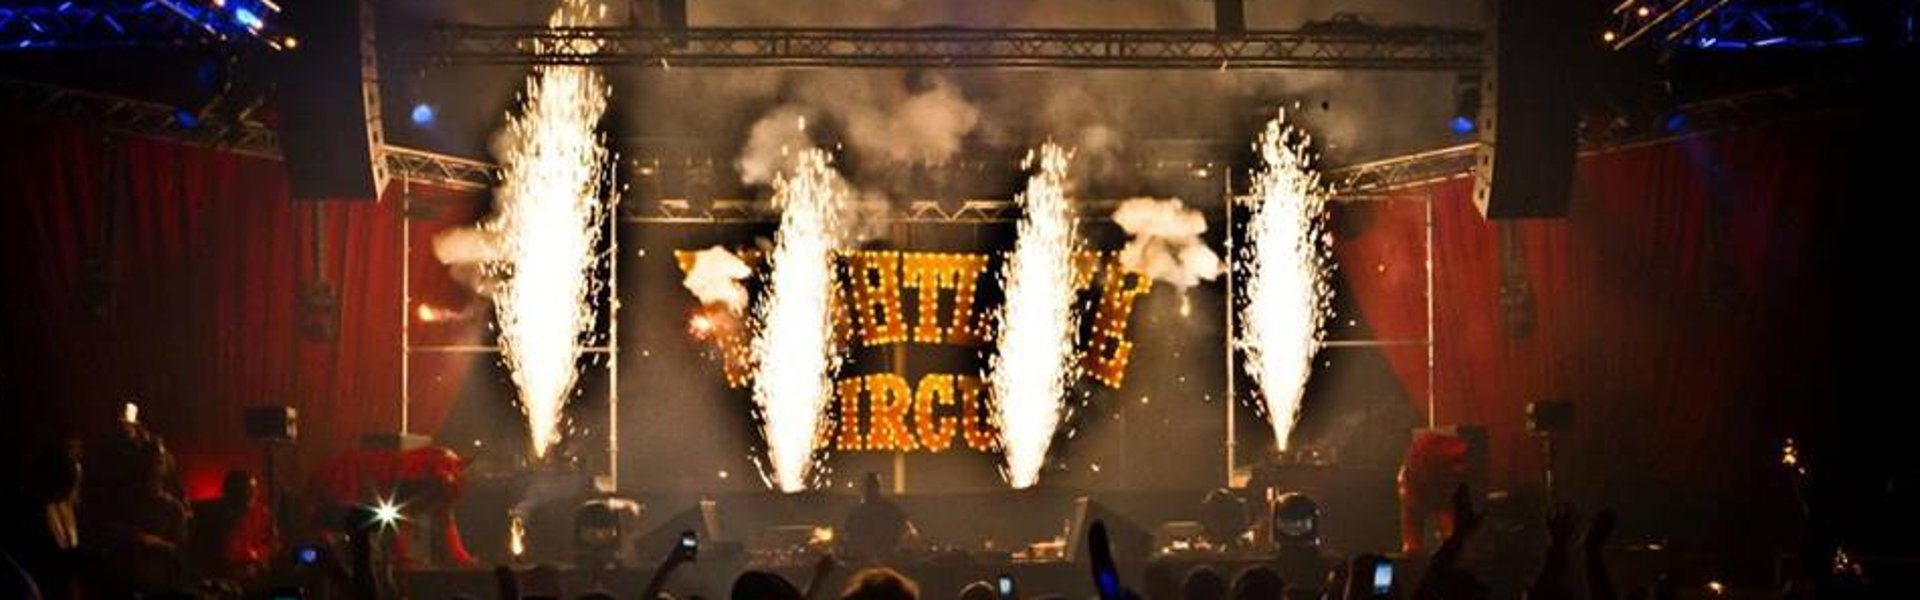 Musical Fireworkshows 1